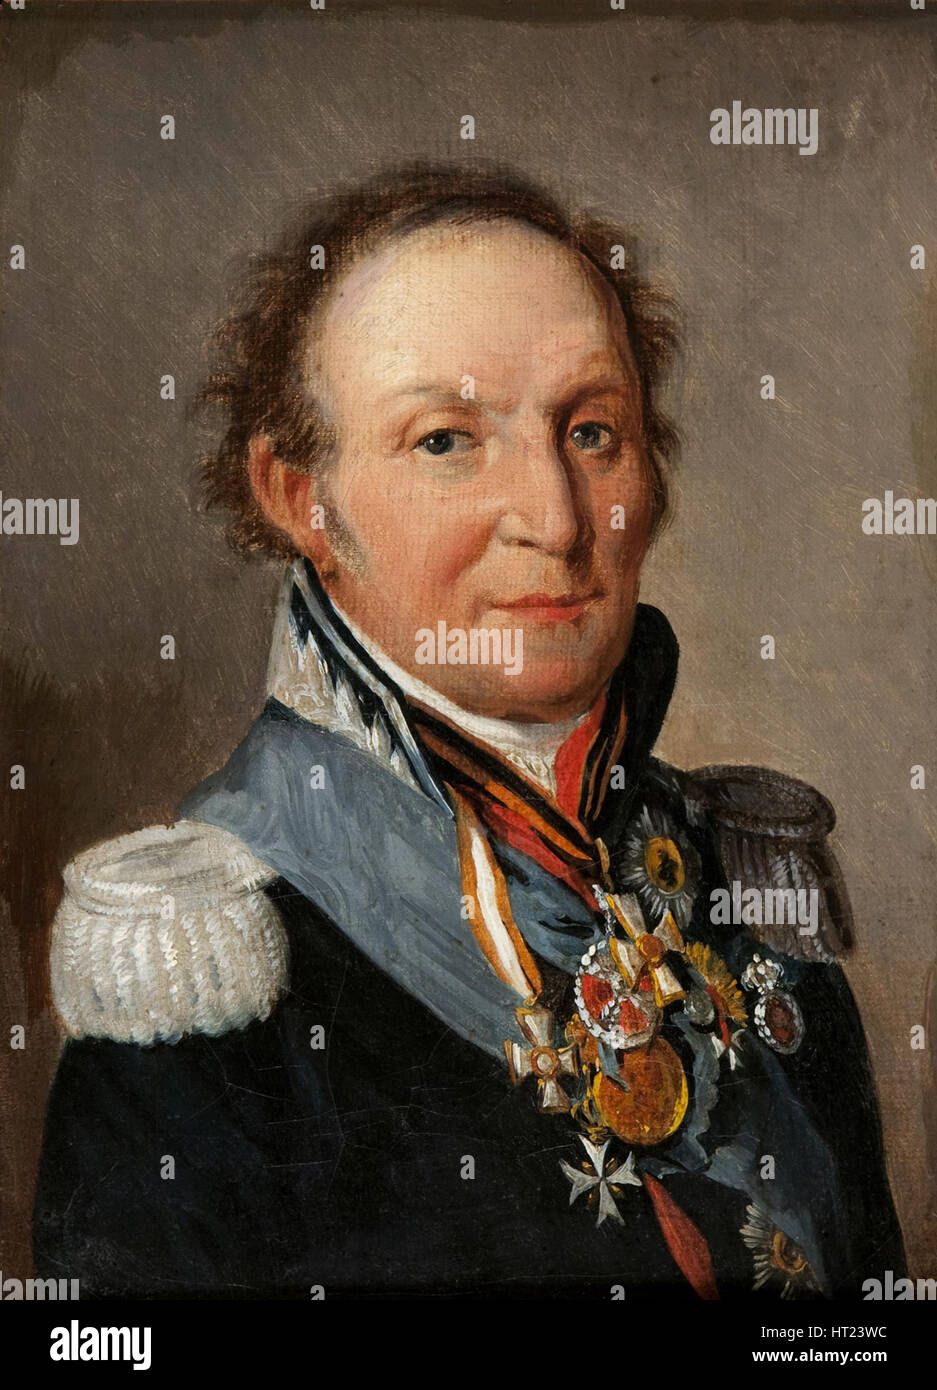 Portrait of Field Marshal Count Ludwig Adolf Peter of Sayn-Wittgenstein-Ludwigsburg (1769-1843). Artist: Boilly, - Stock Image